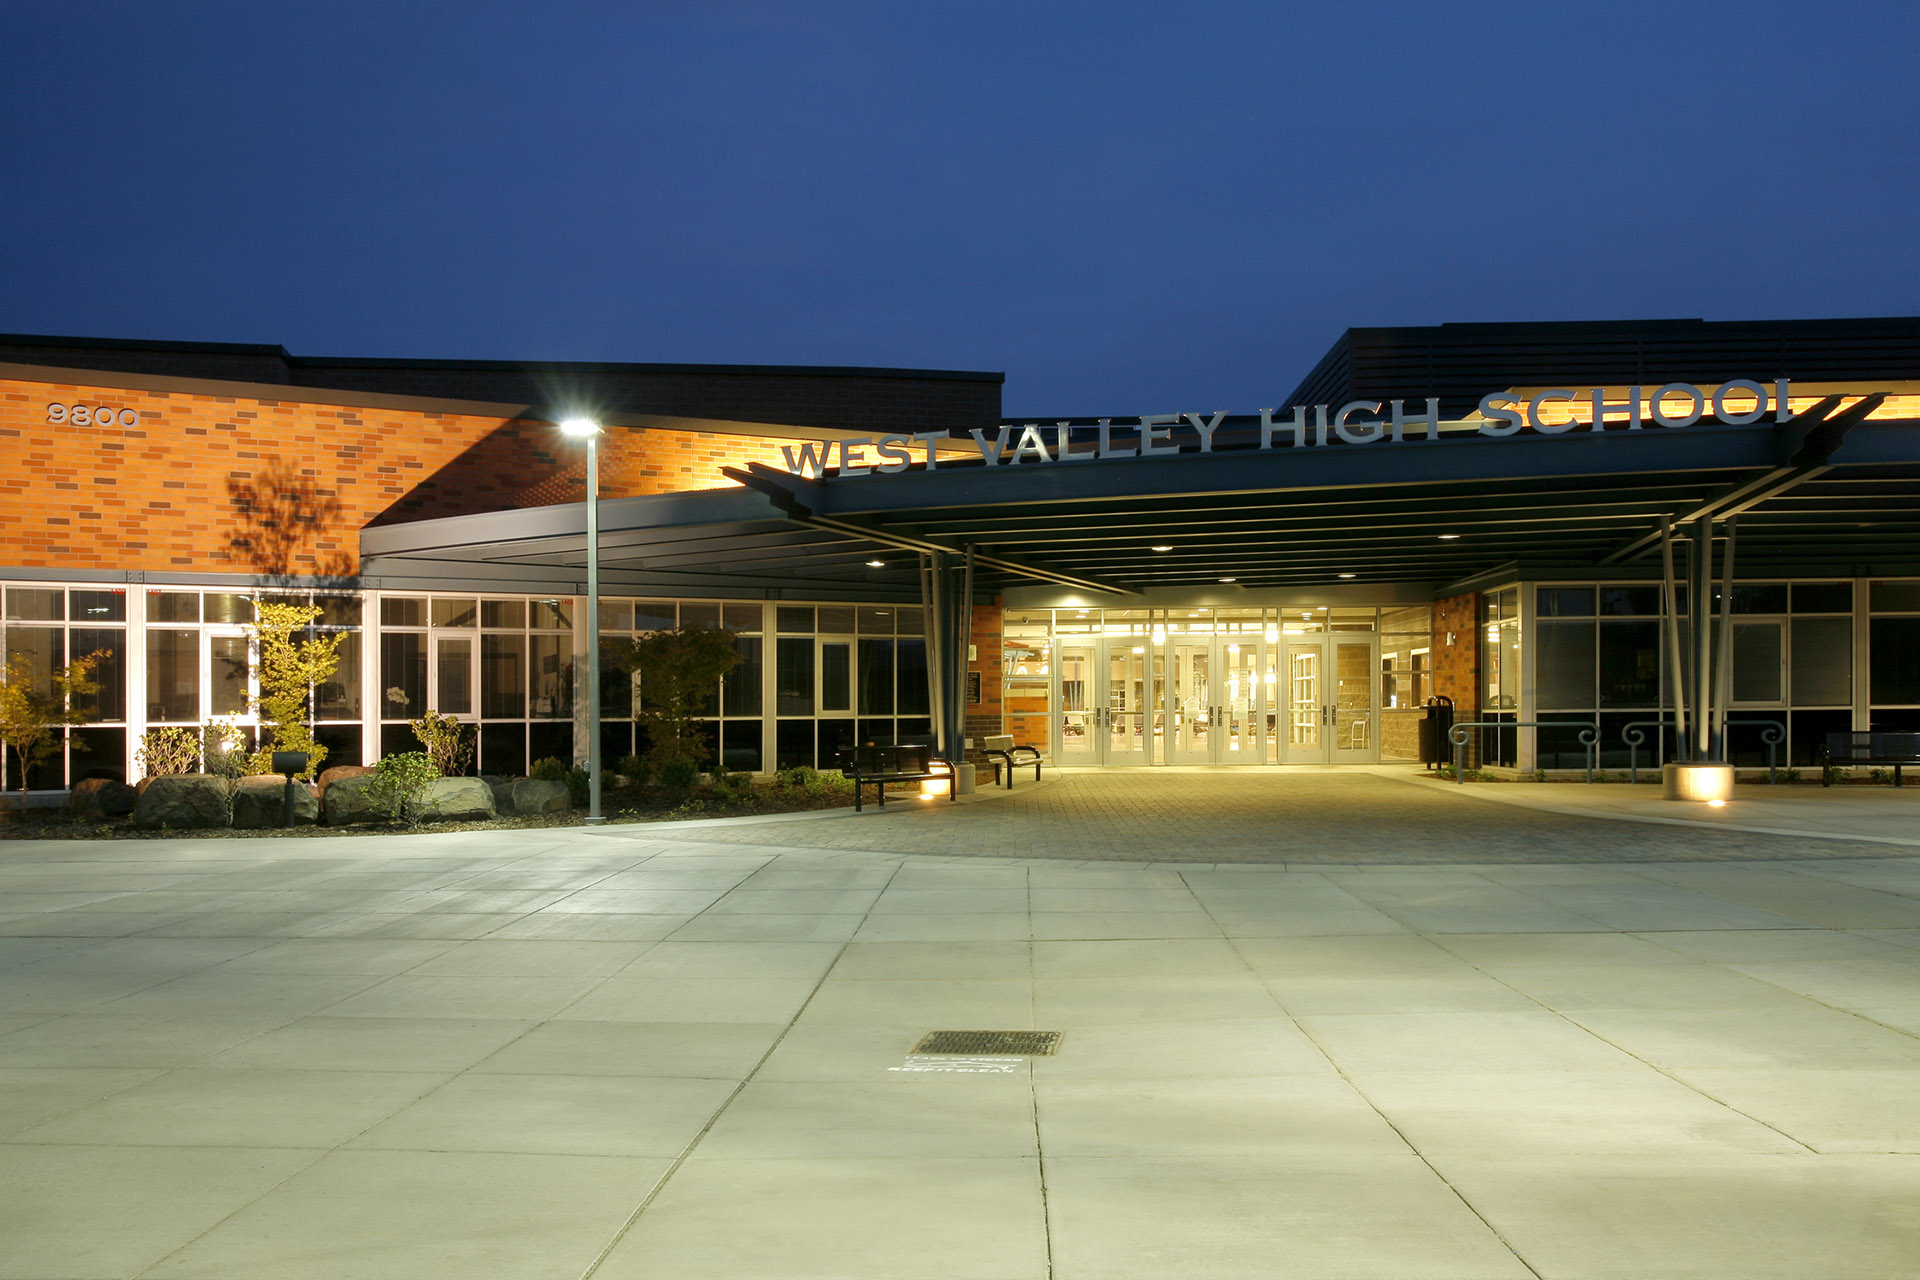 West Valley HS Entry